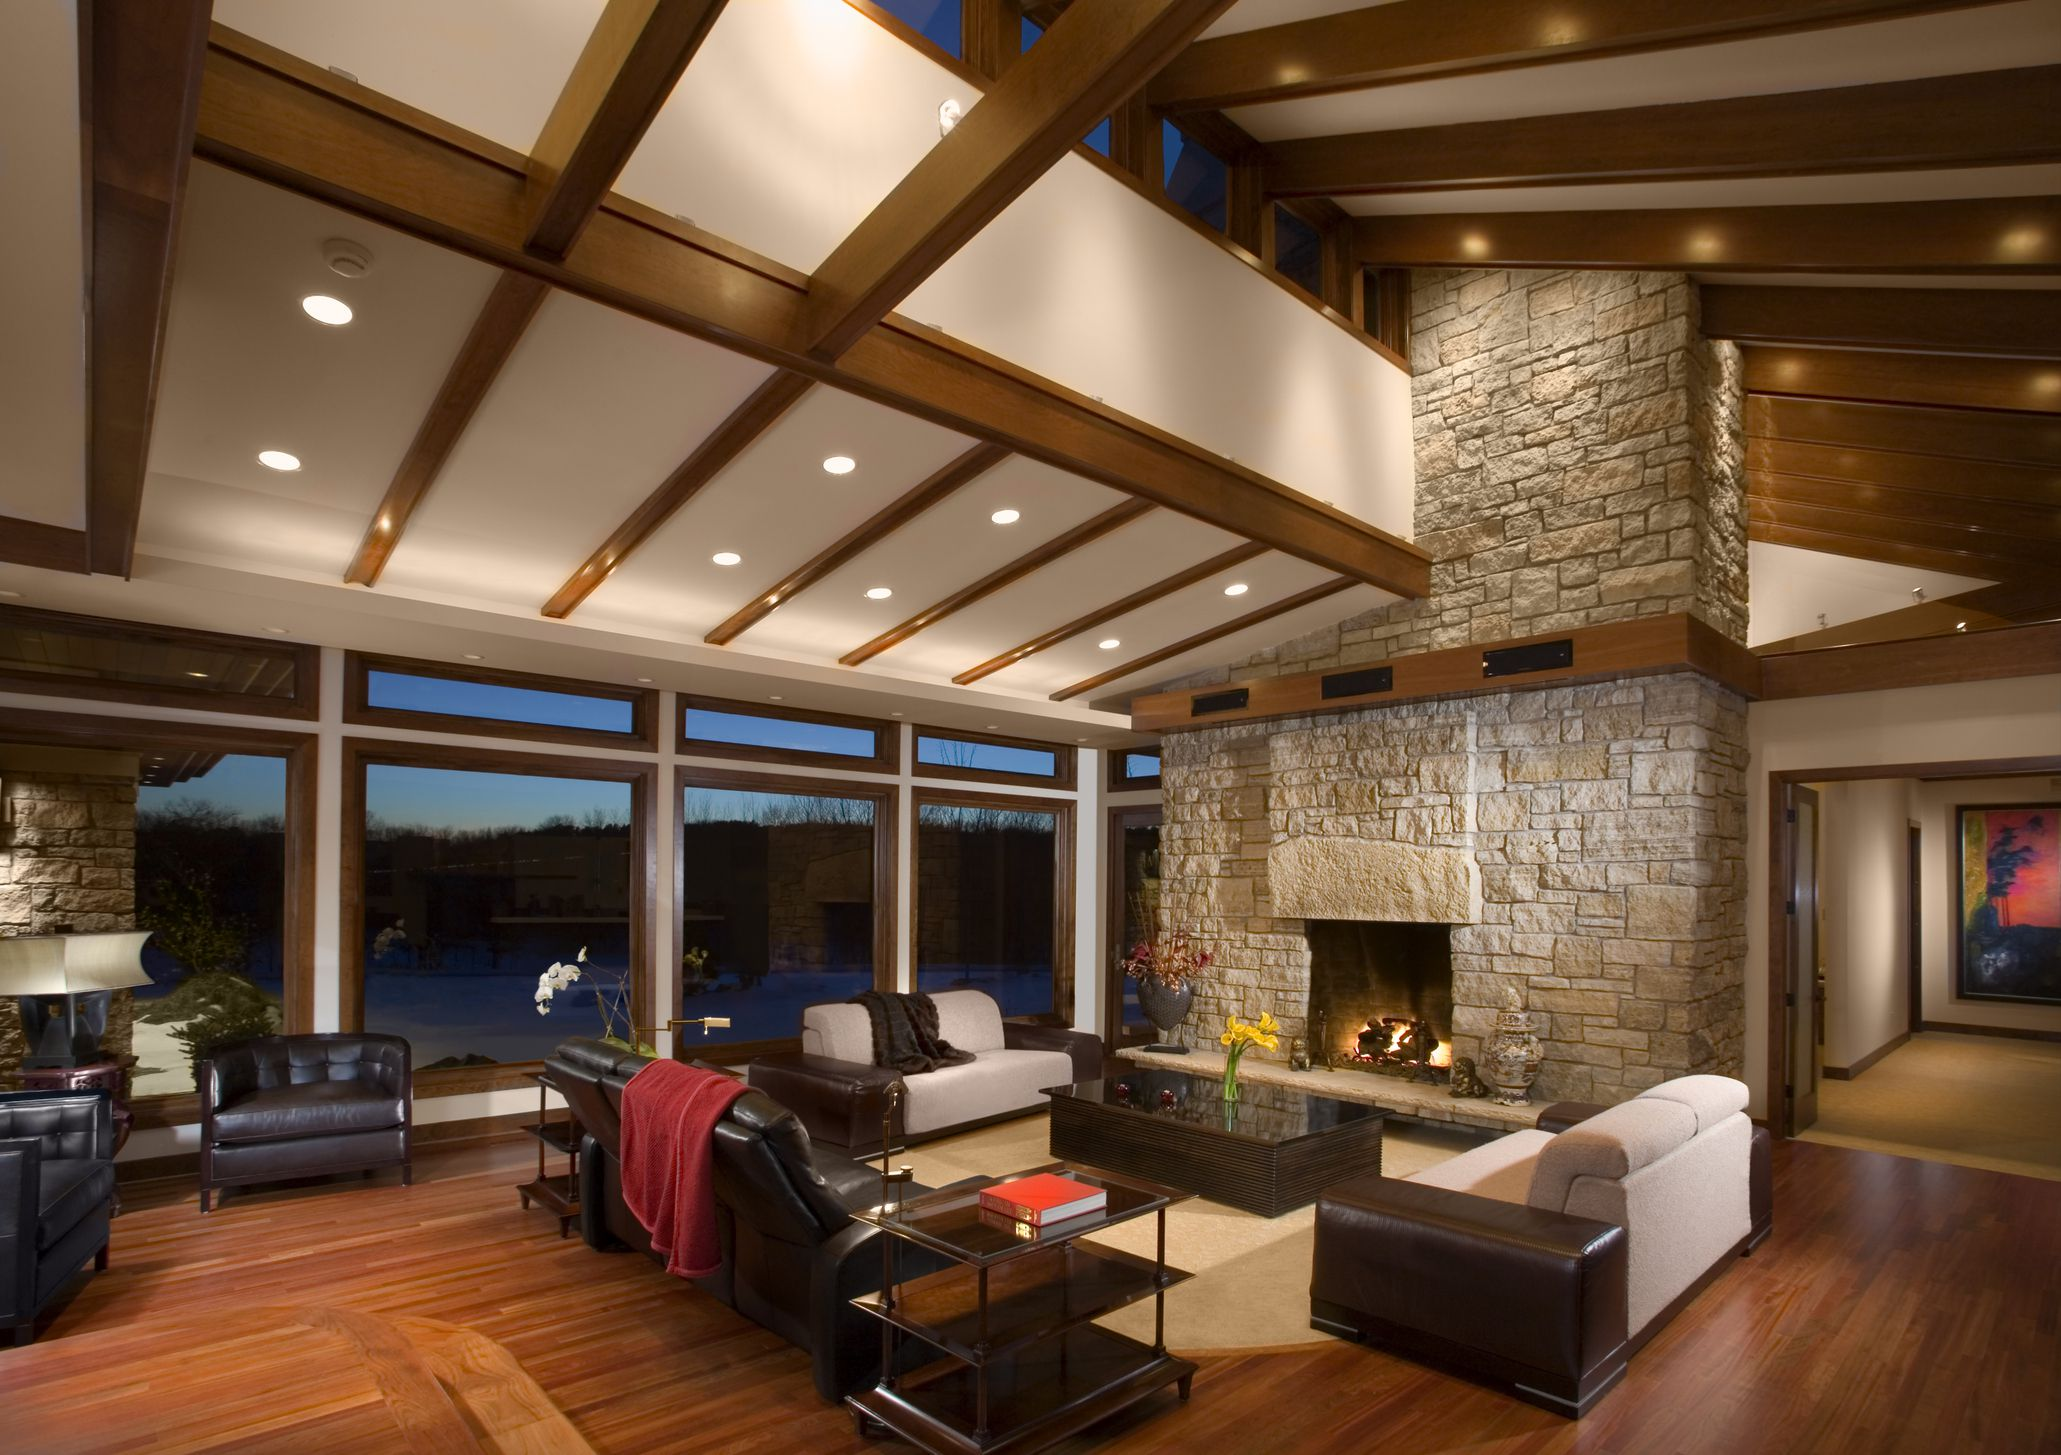 Vaulted ceilings pros and cons myths and truths for How to paint a vaulted ceiling room